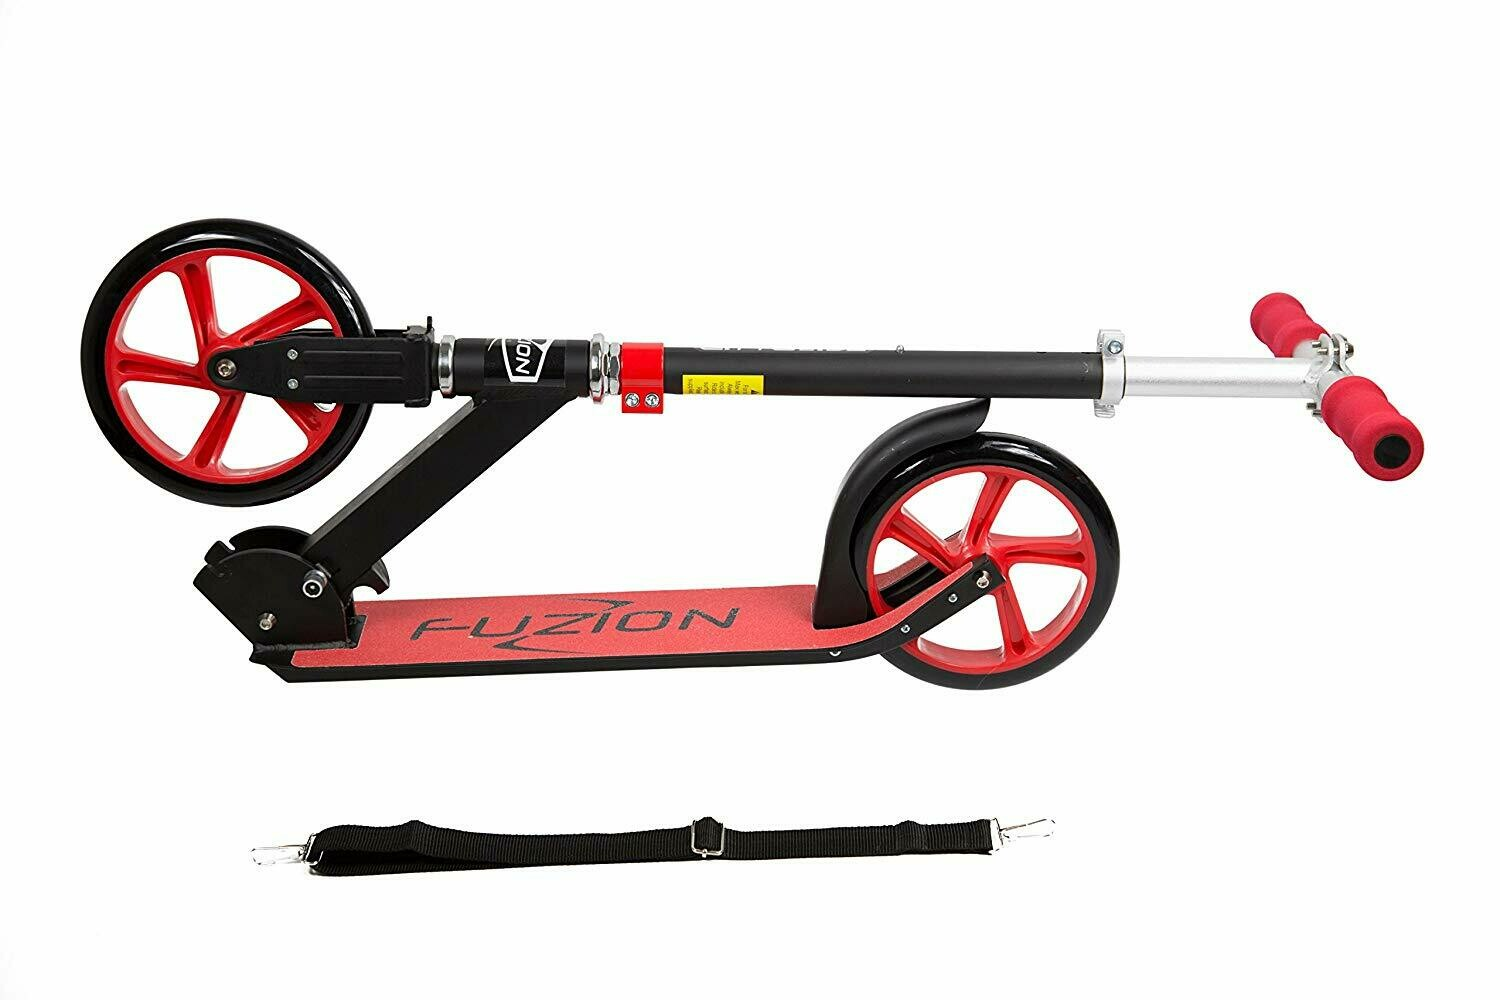 Fuzion Cityglide Adult Kick Scooter - Smooth, Pro Push Urban Scooters Adults, Commuter Scooters, City Scooters - Folding Scooter Adjustable T-Bar - Big Kids, Boys Girls (Max 220lbs)